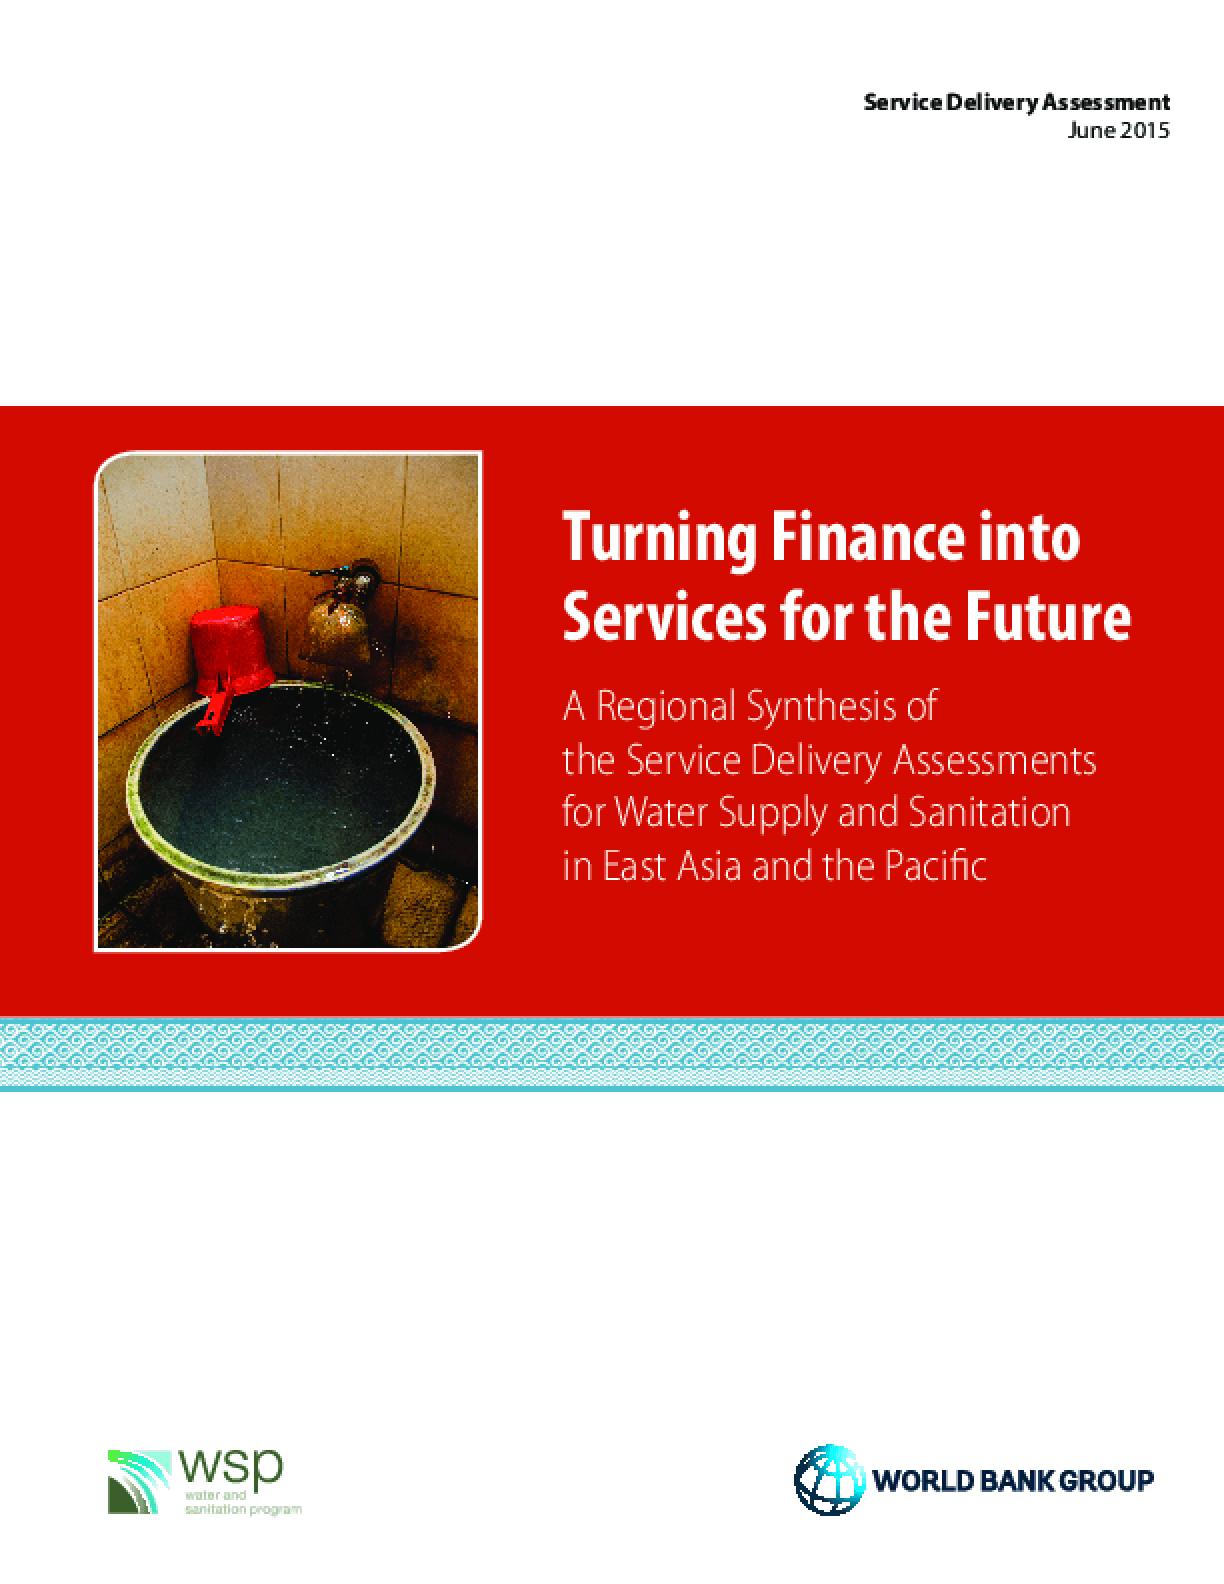 Turning Finance Into Services for the Future: A Regional Synthesis of the Service Delivery Assessments for Water Supply and Sanitation in East Asia and the Pacific